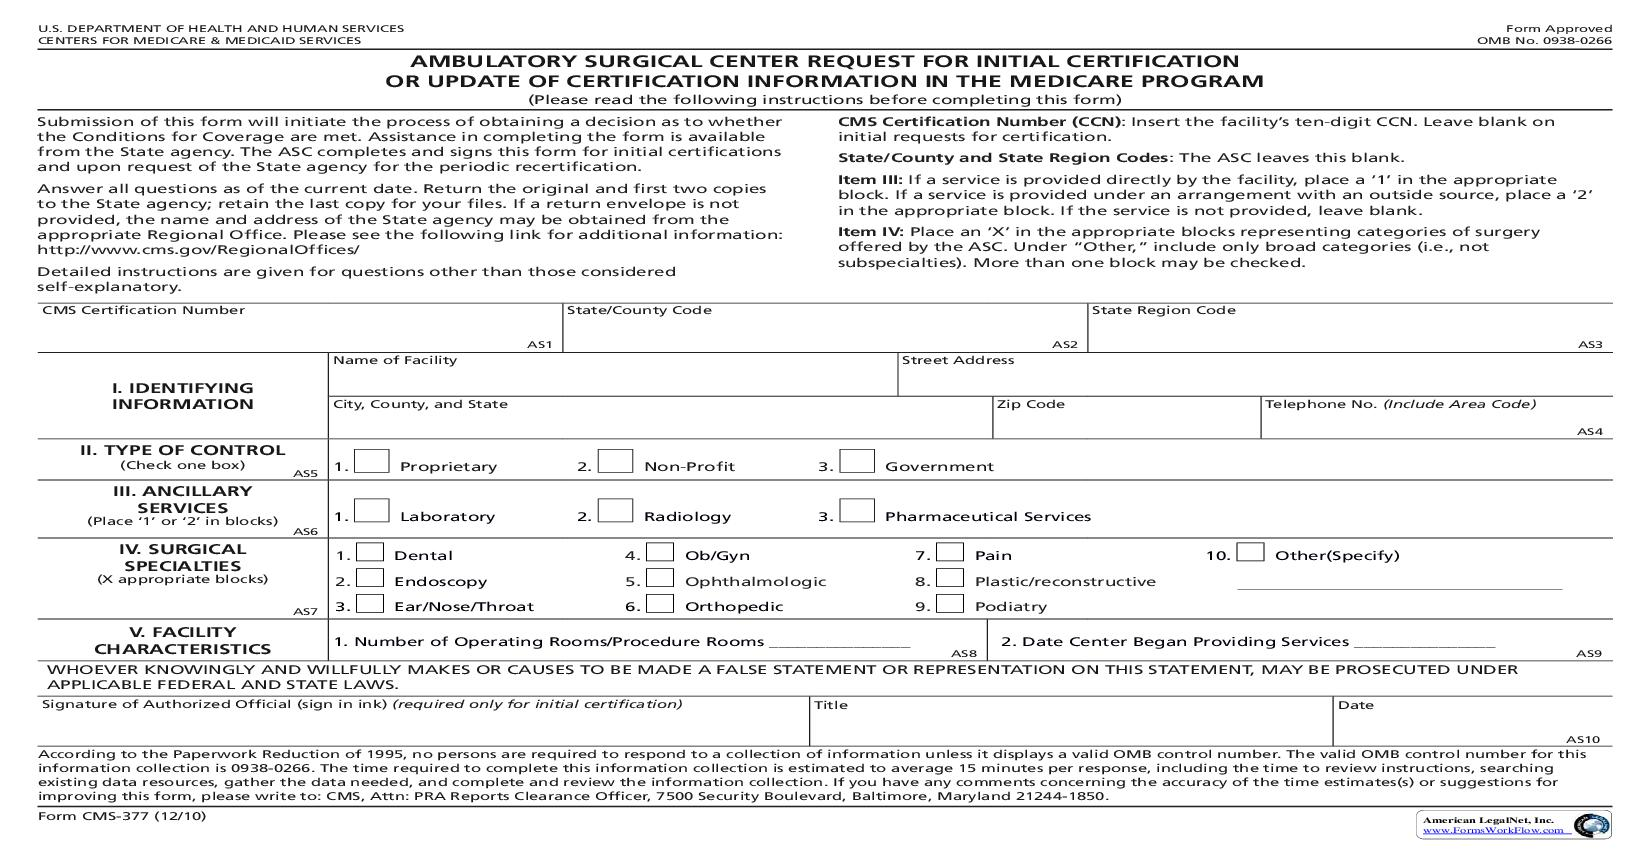 Ambulatory Surgical Center Request For Certification In The Medicare